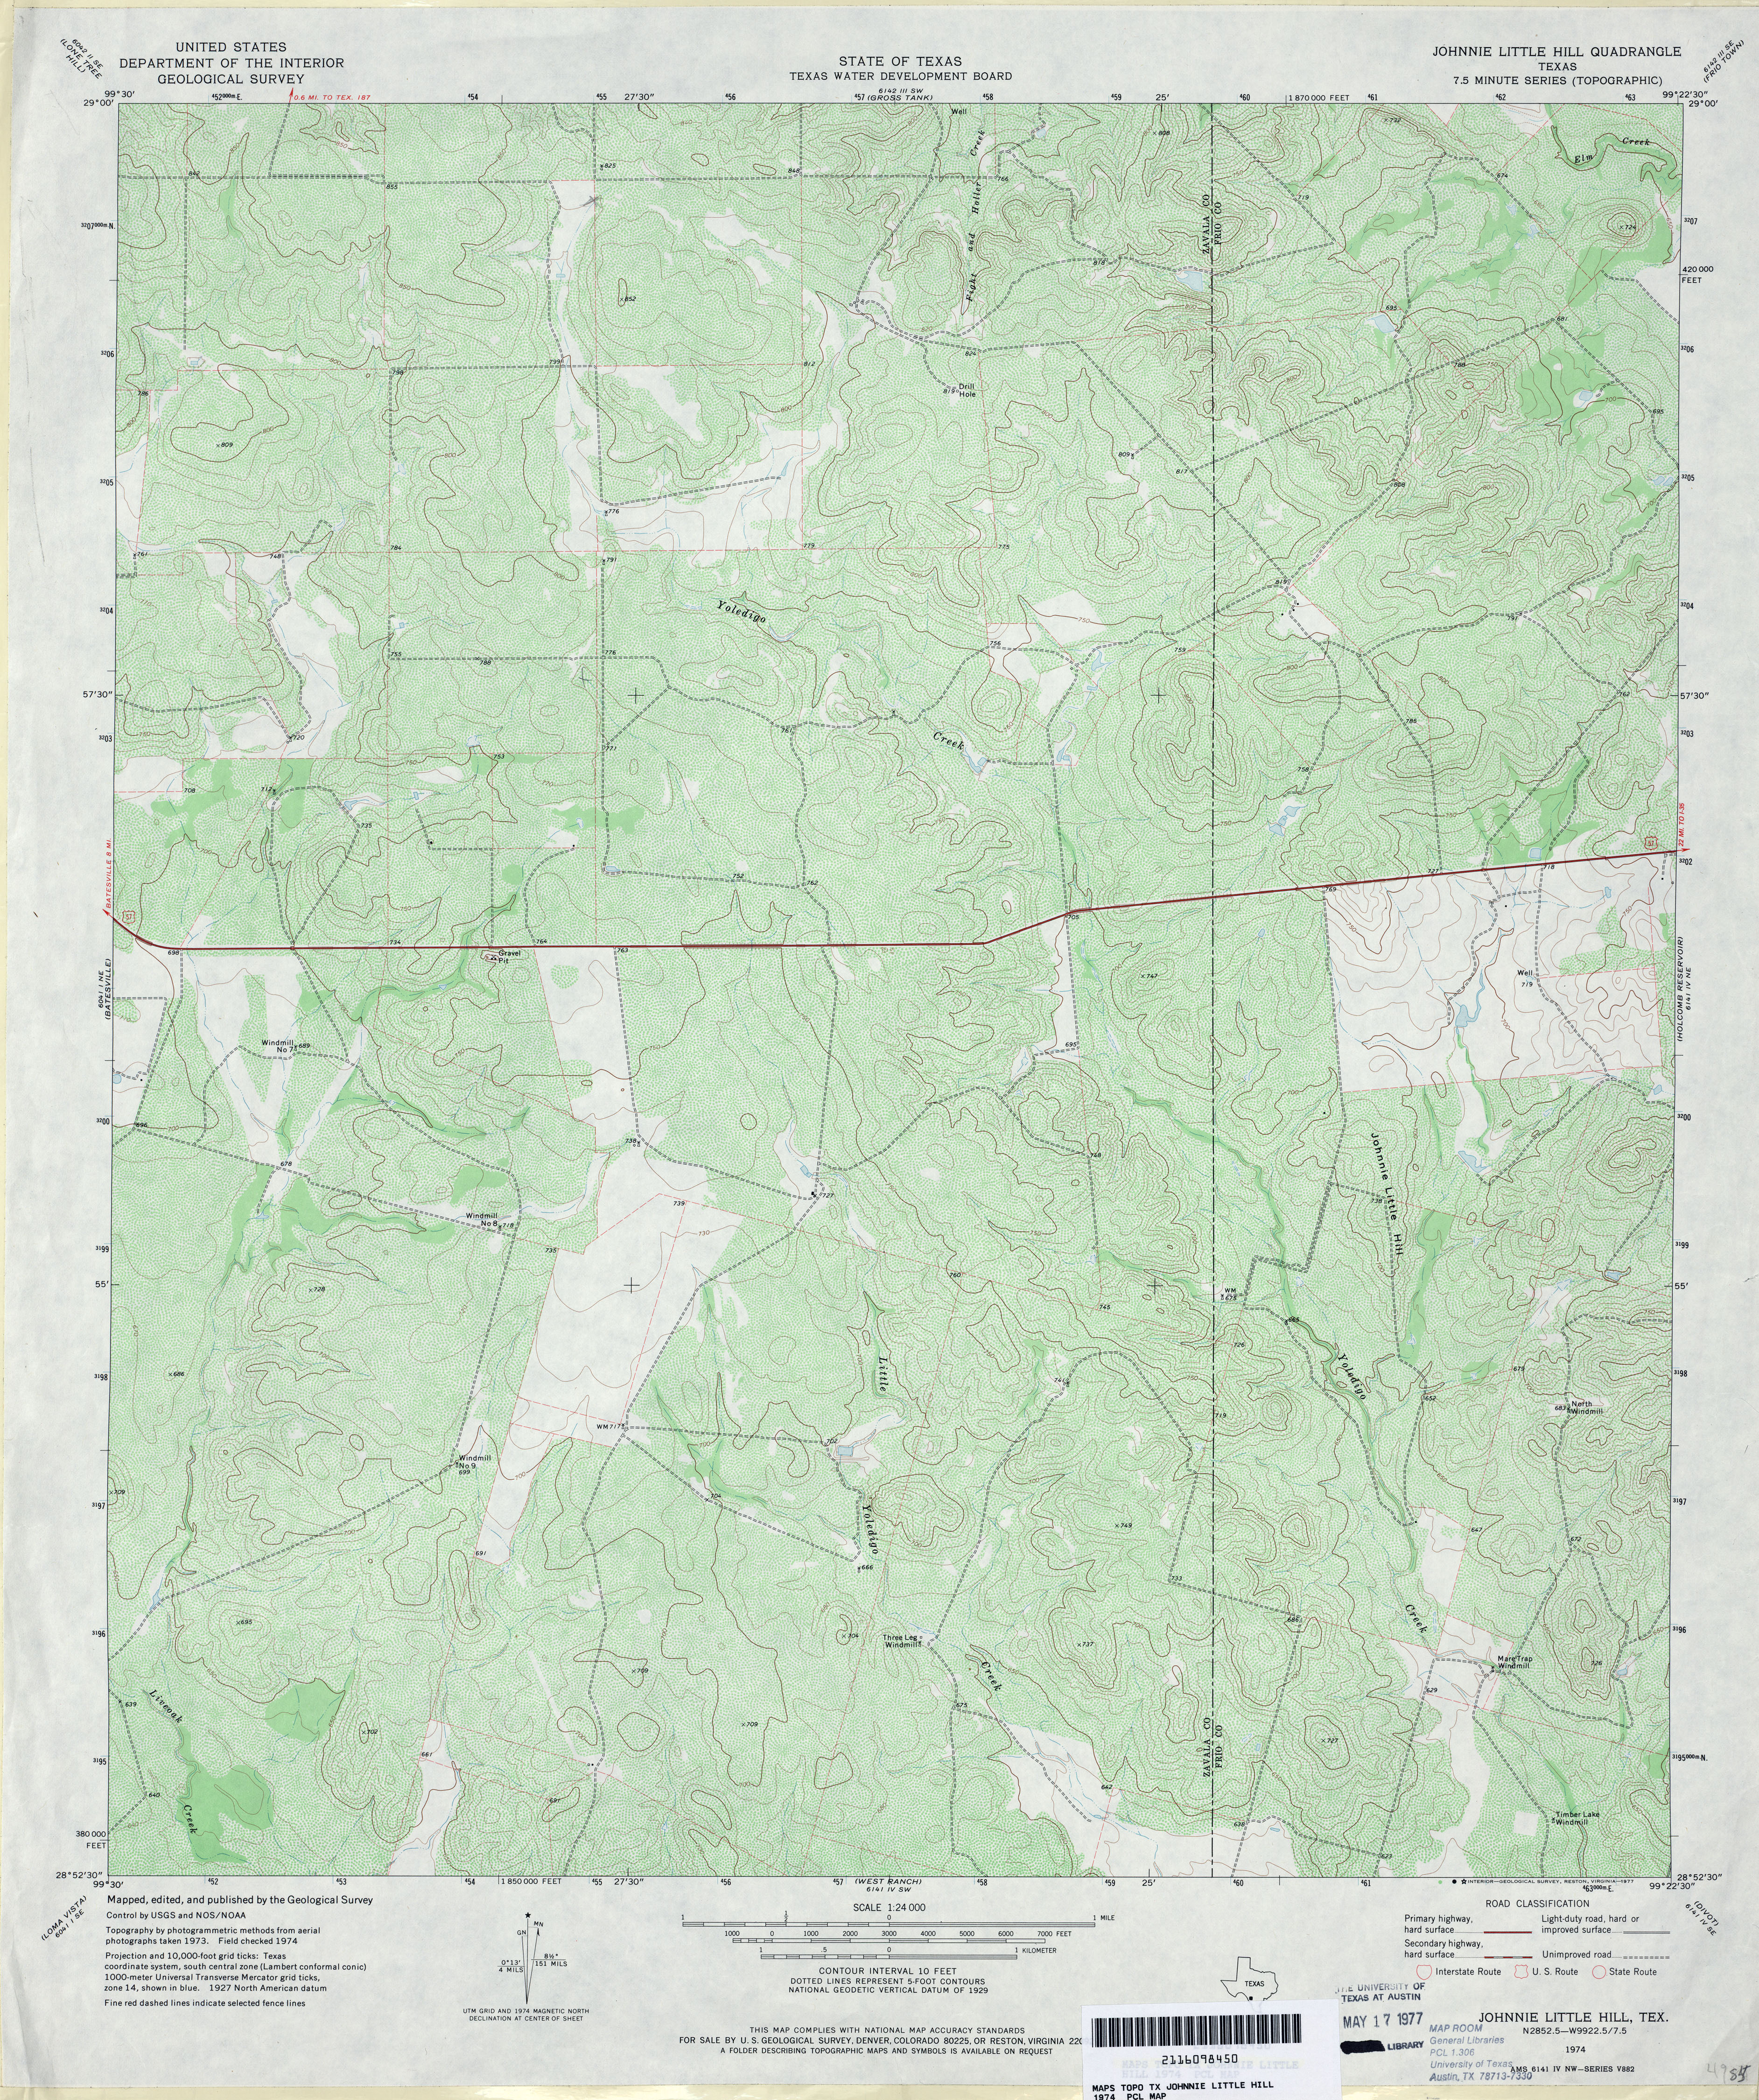 texas topographic maps perry castañeda map collection ut johnnie little hill